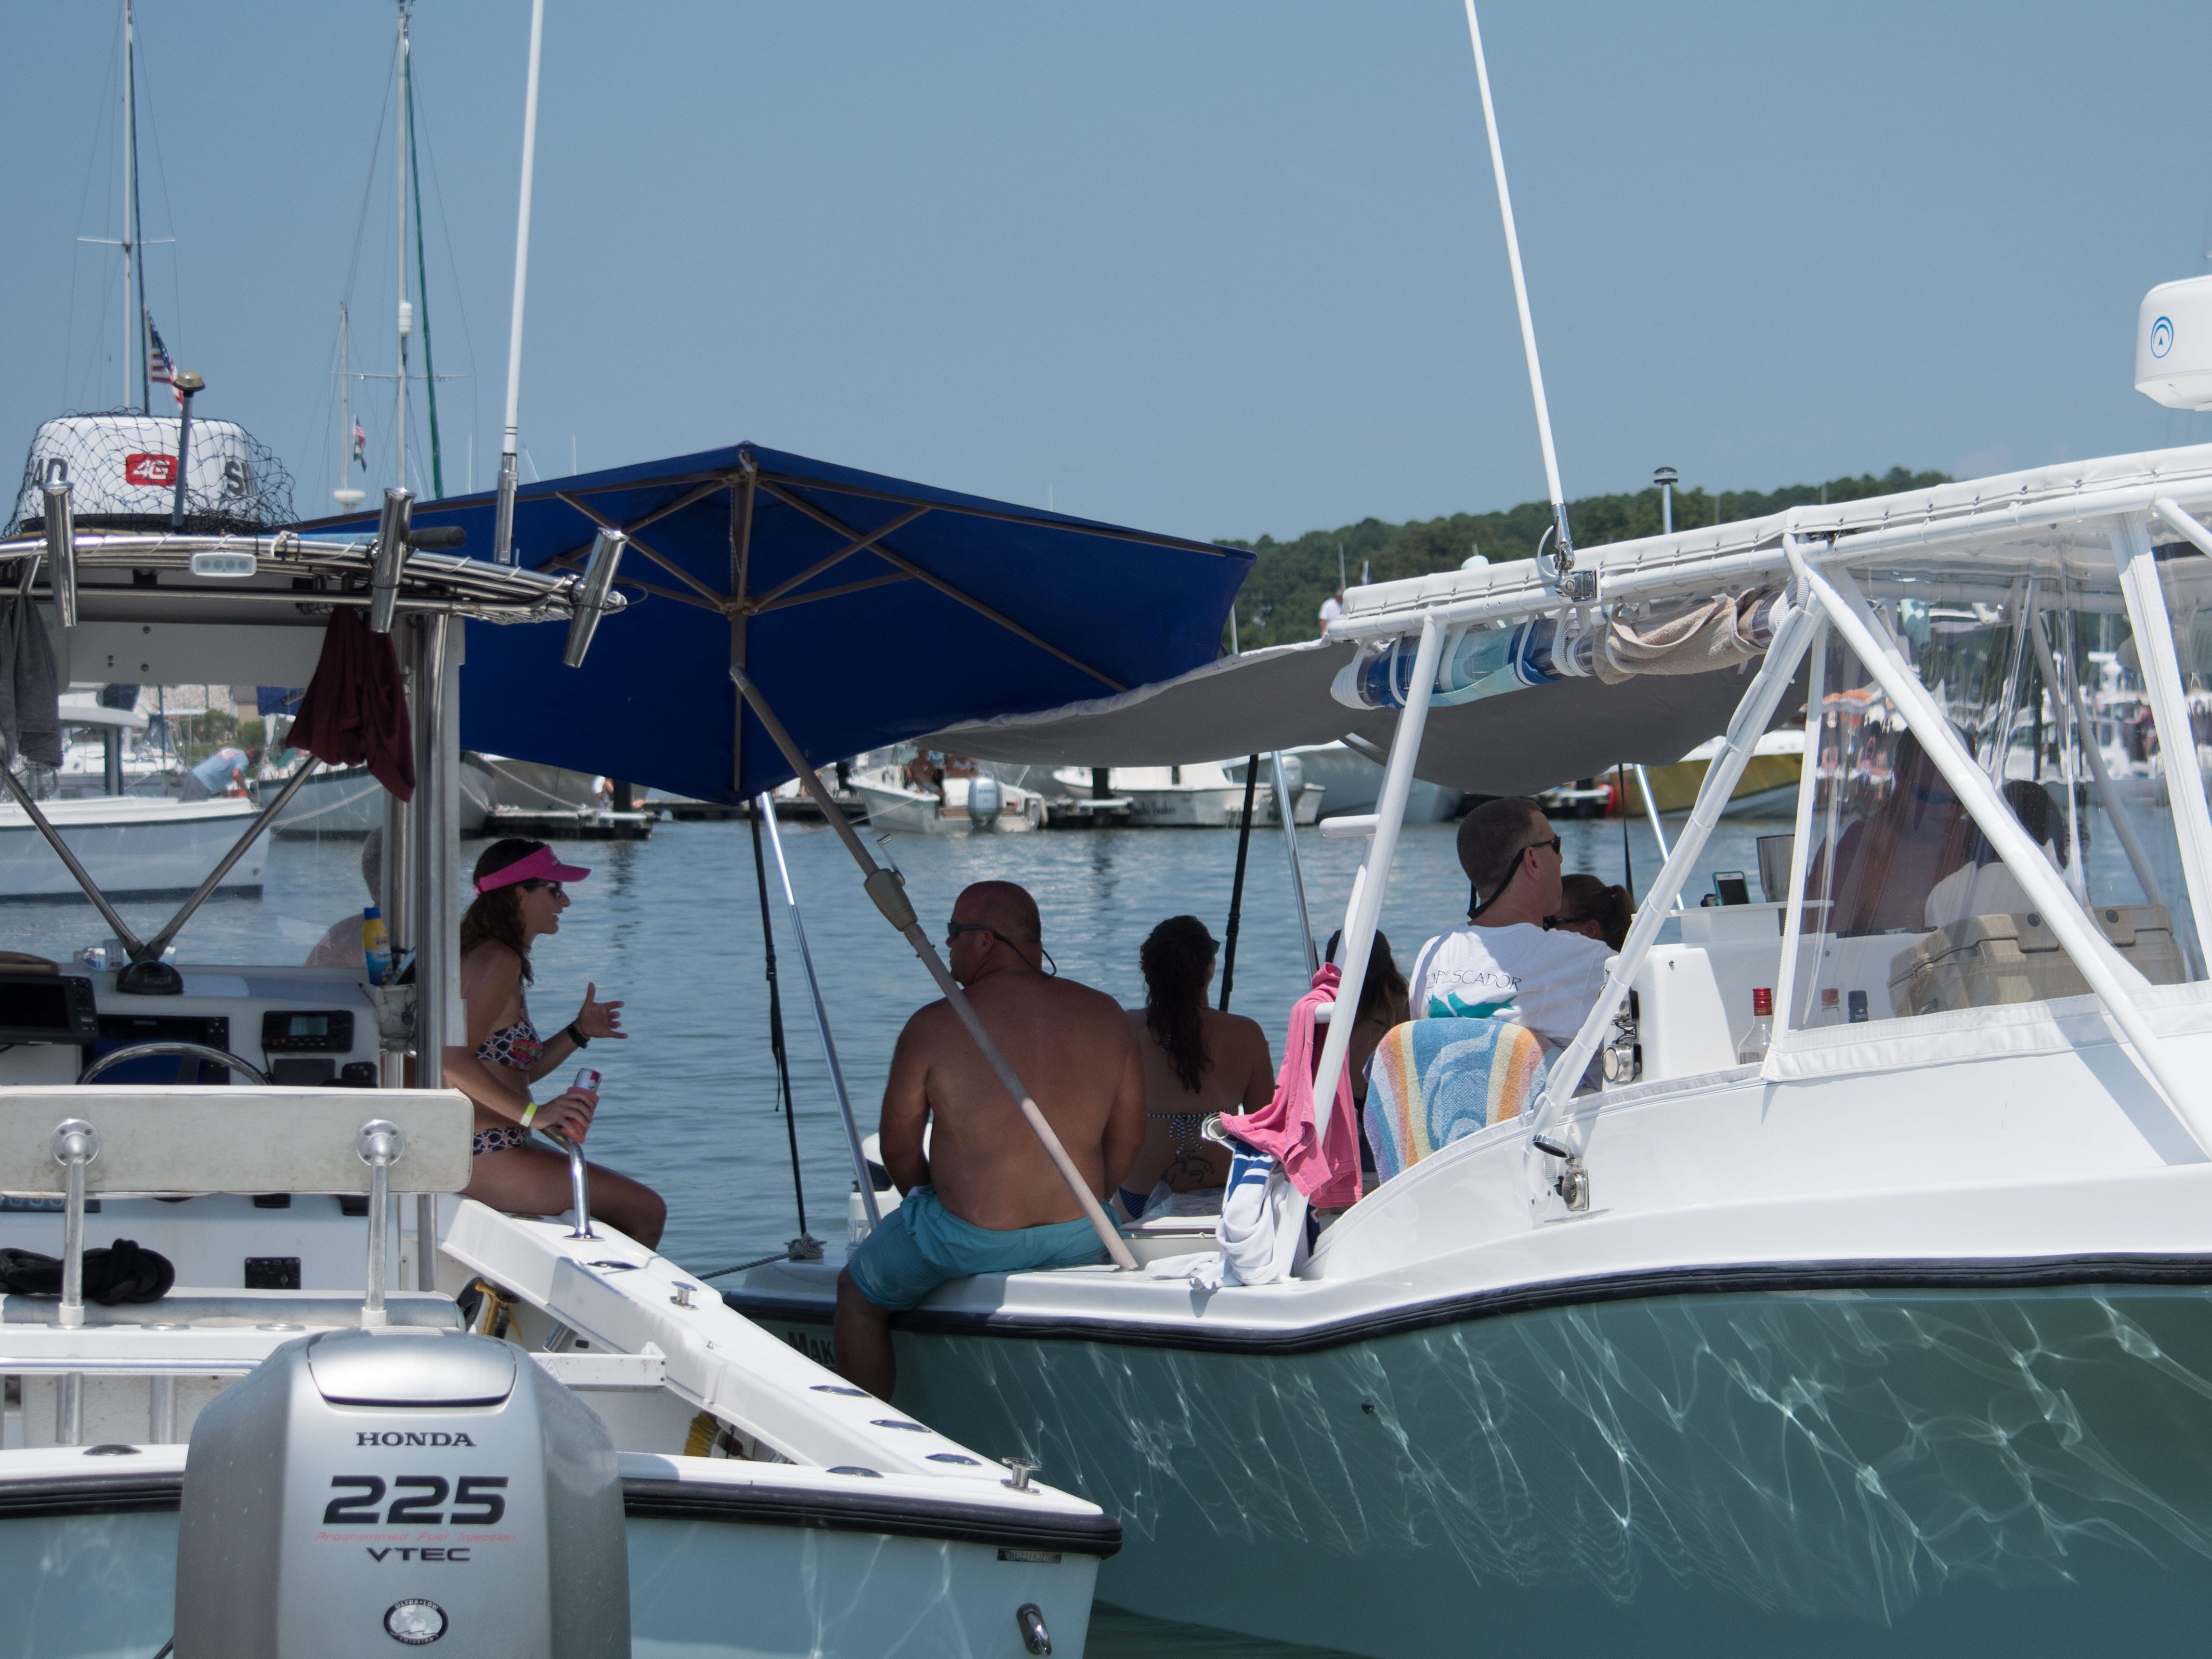 Spectators relax on the sidelines to watch the Boat Docking Contest on Sunday, Aug 5,  in Cape Charles.